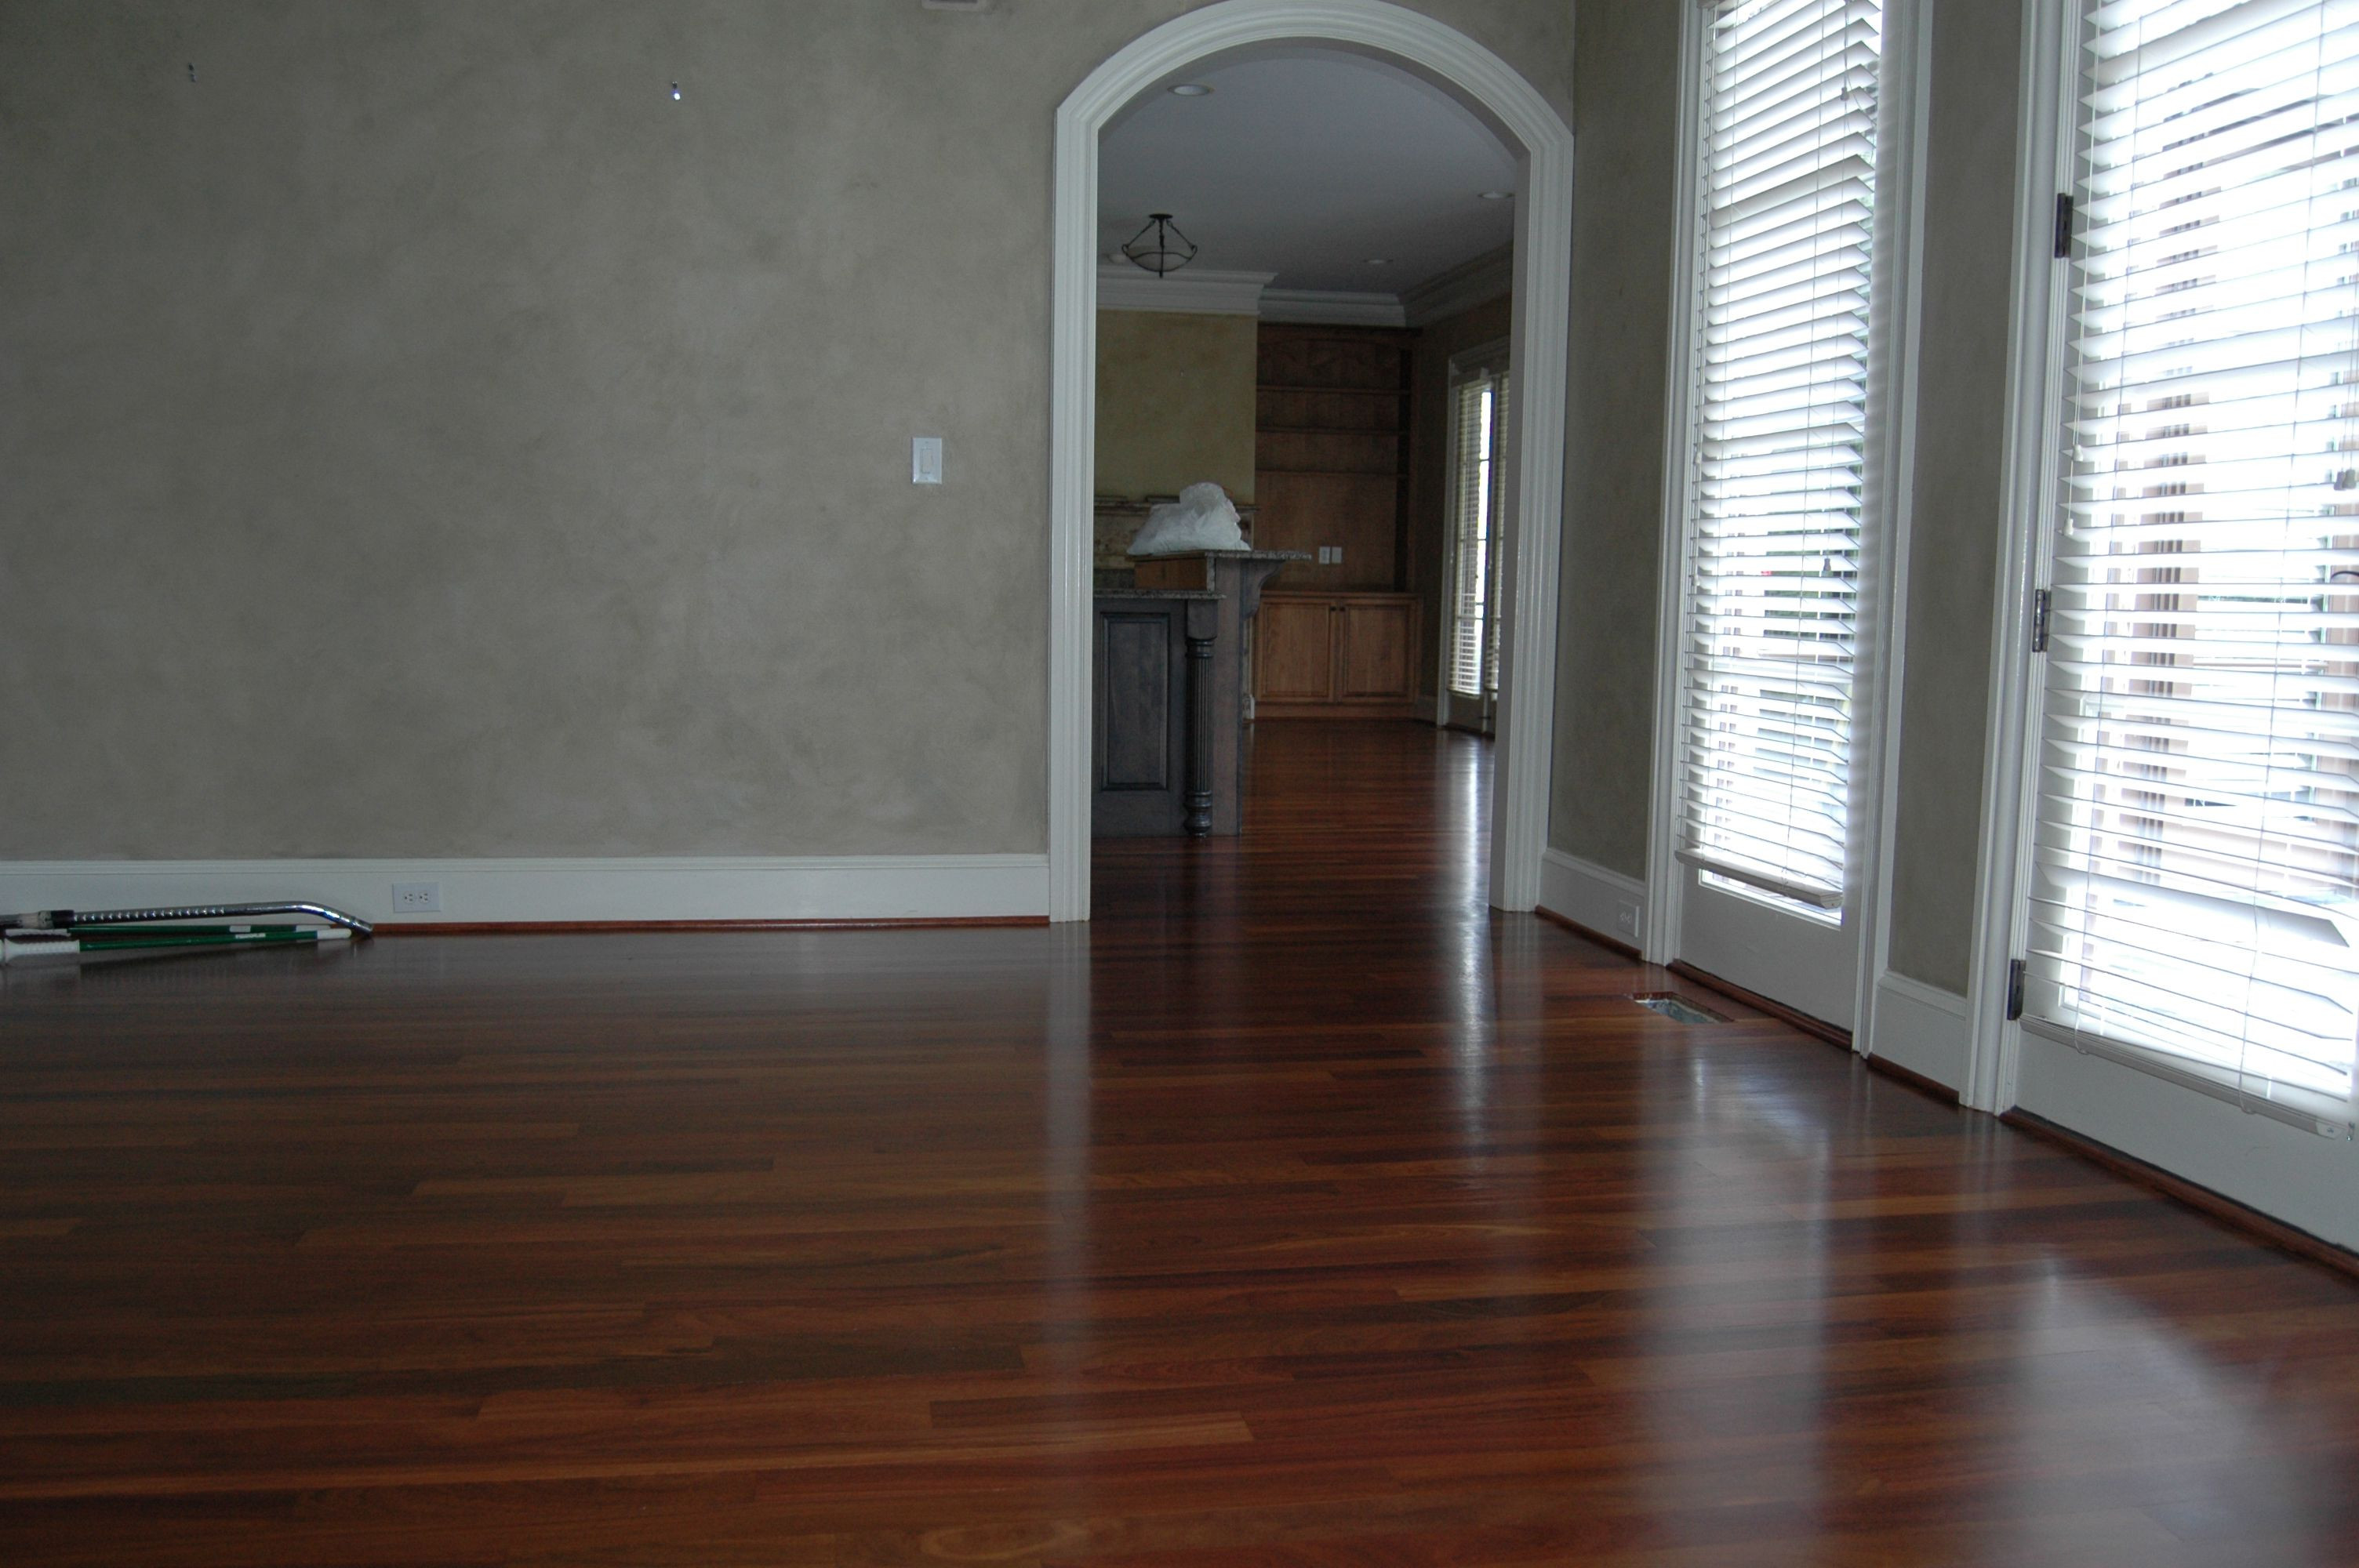 Gray Bamboo Hardwood Flooring Of Dark Wood Floors Grey Walls Amazing Stunning Gray and Contemporary Pertaining to Dark Wood Floors Grey Walls Amazing Stunning Gray and Contemporary Types Of Hardwood Intended for 5 Winduprocketapps Com Dark Wood Floors Grey Walls Dark